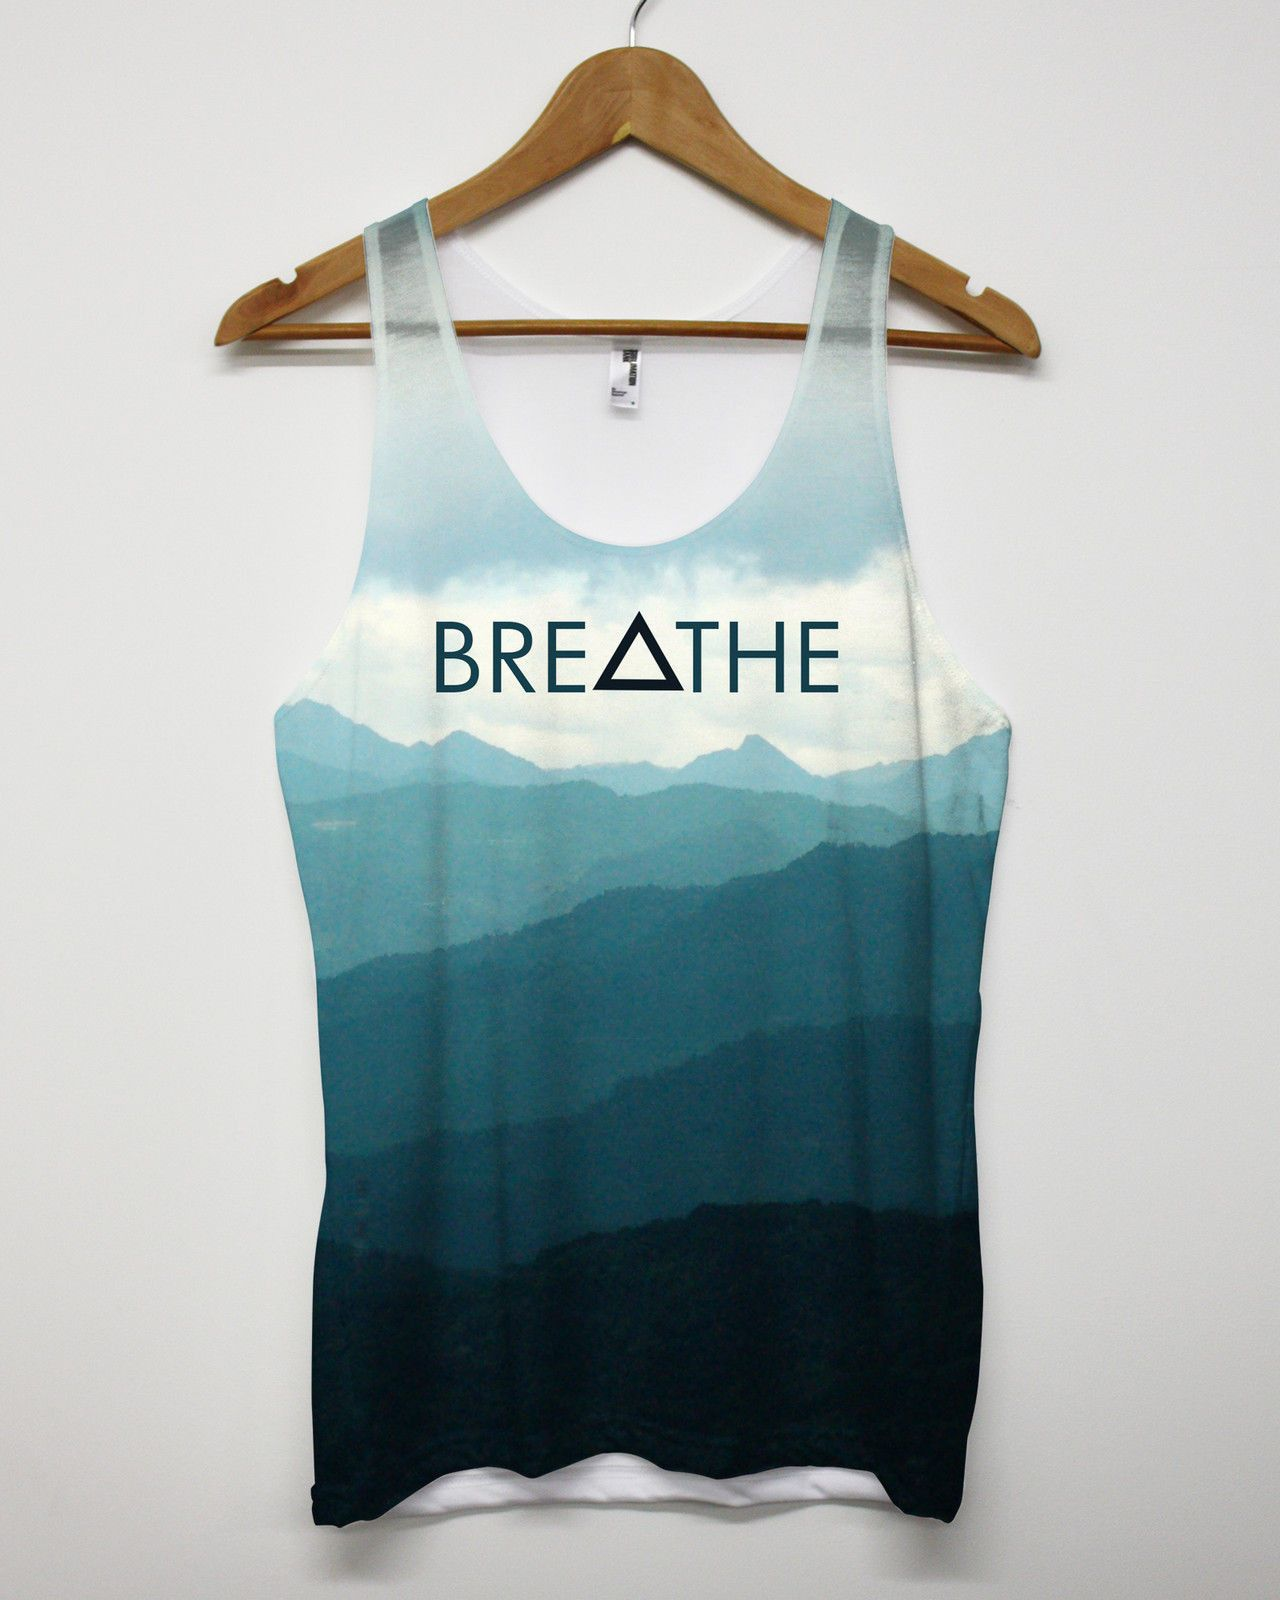 hipster tank tops for women - Google Search